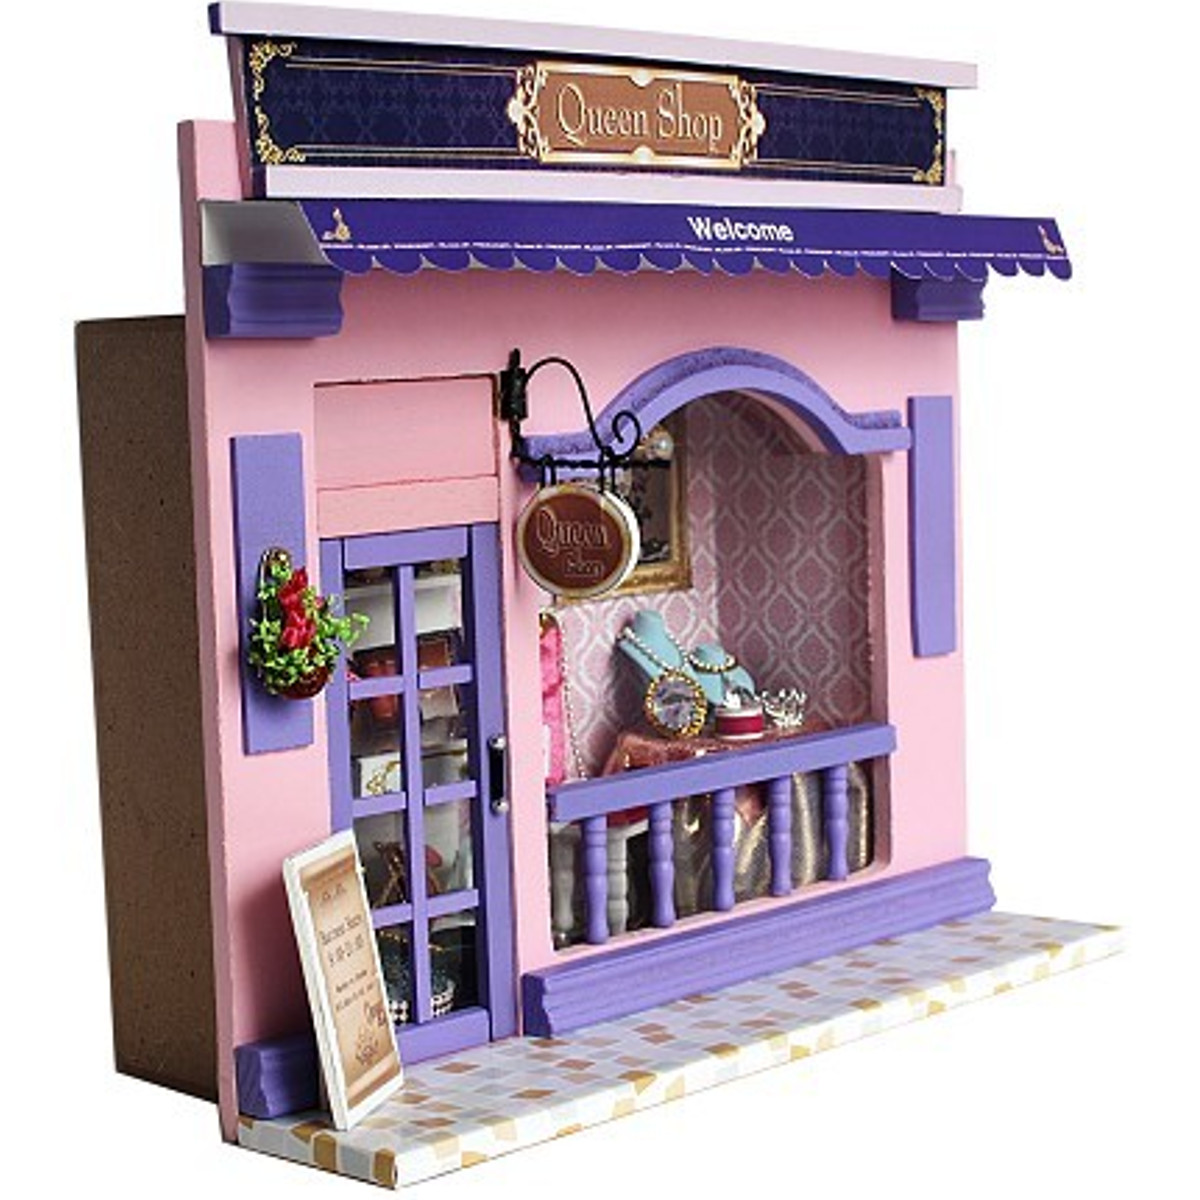 Furniture Dollhouse Miniature DIY Kit Kid House Play DIY Doll House